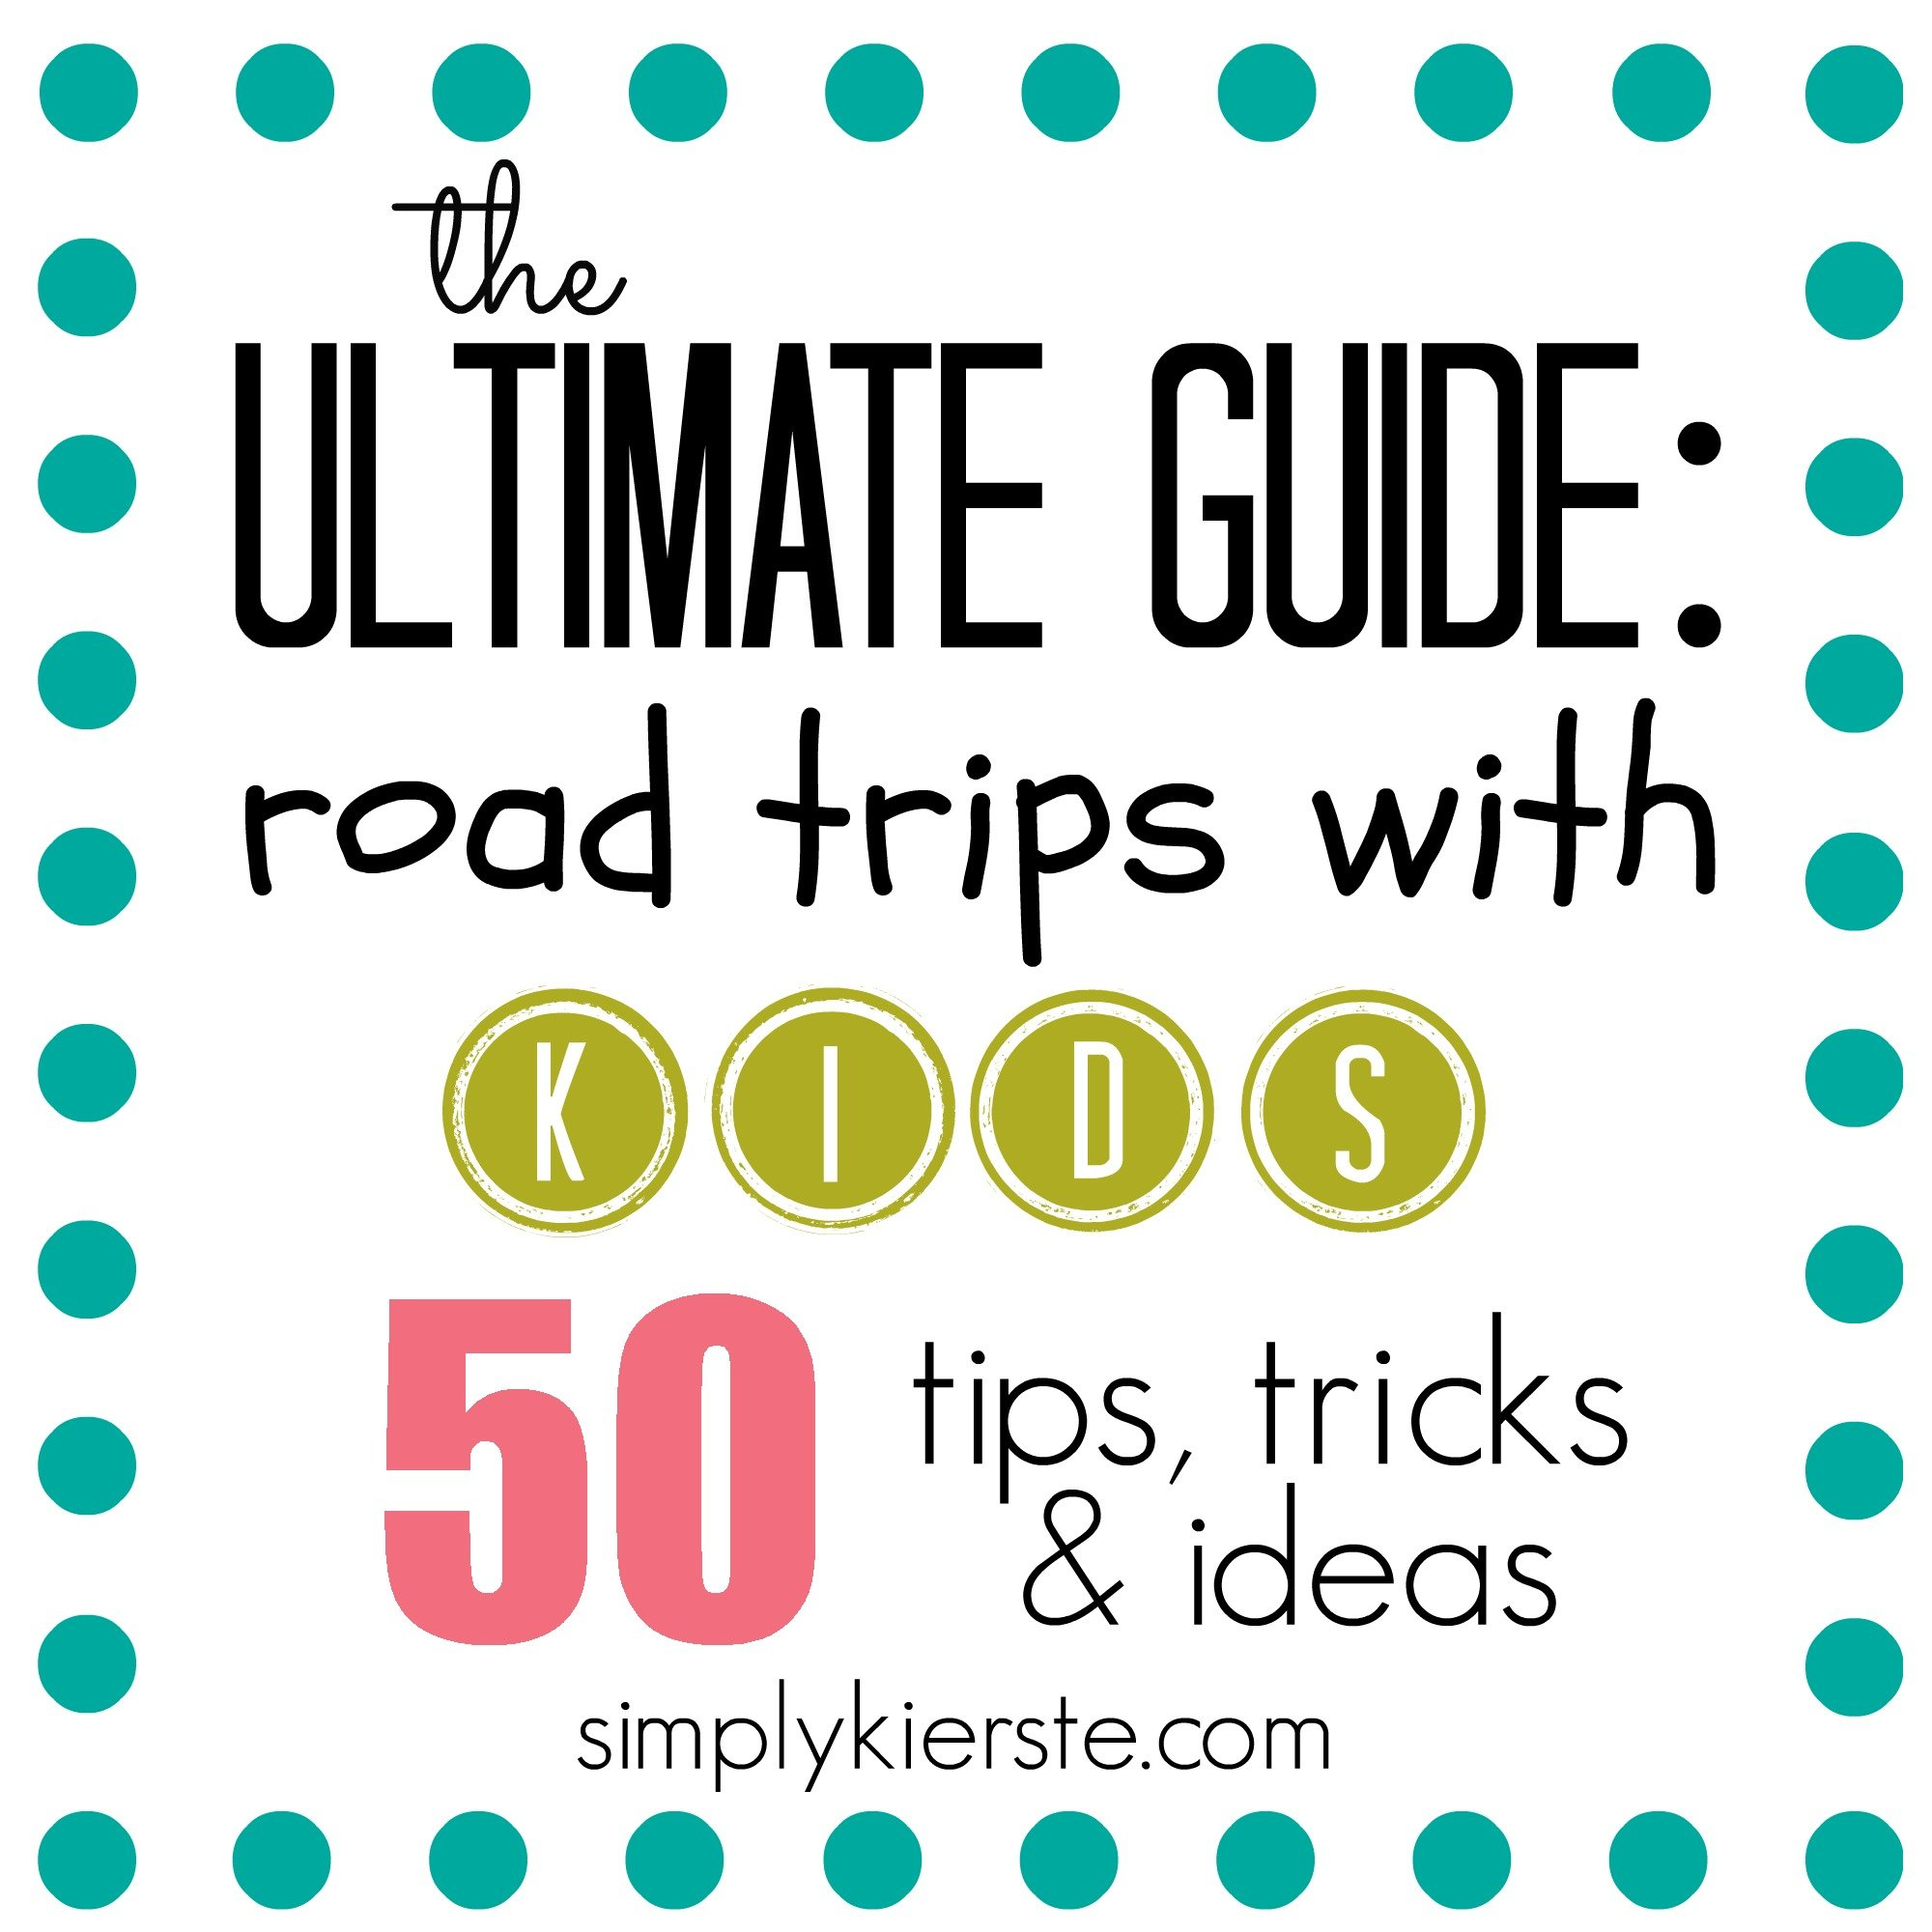 The ultimate guide: 50 tips, tricks & ideas for road trips with kids